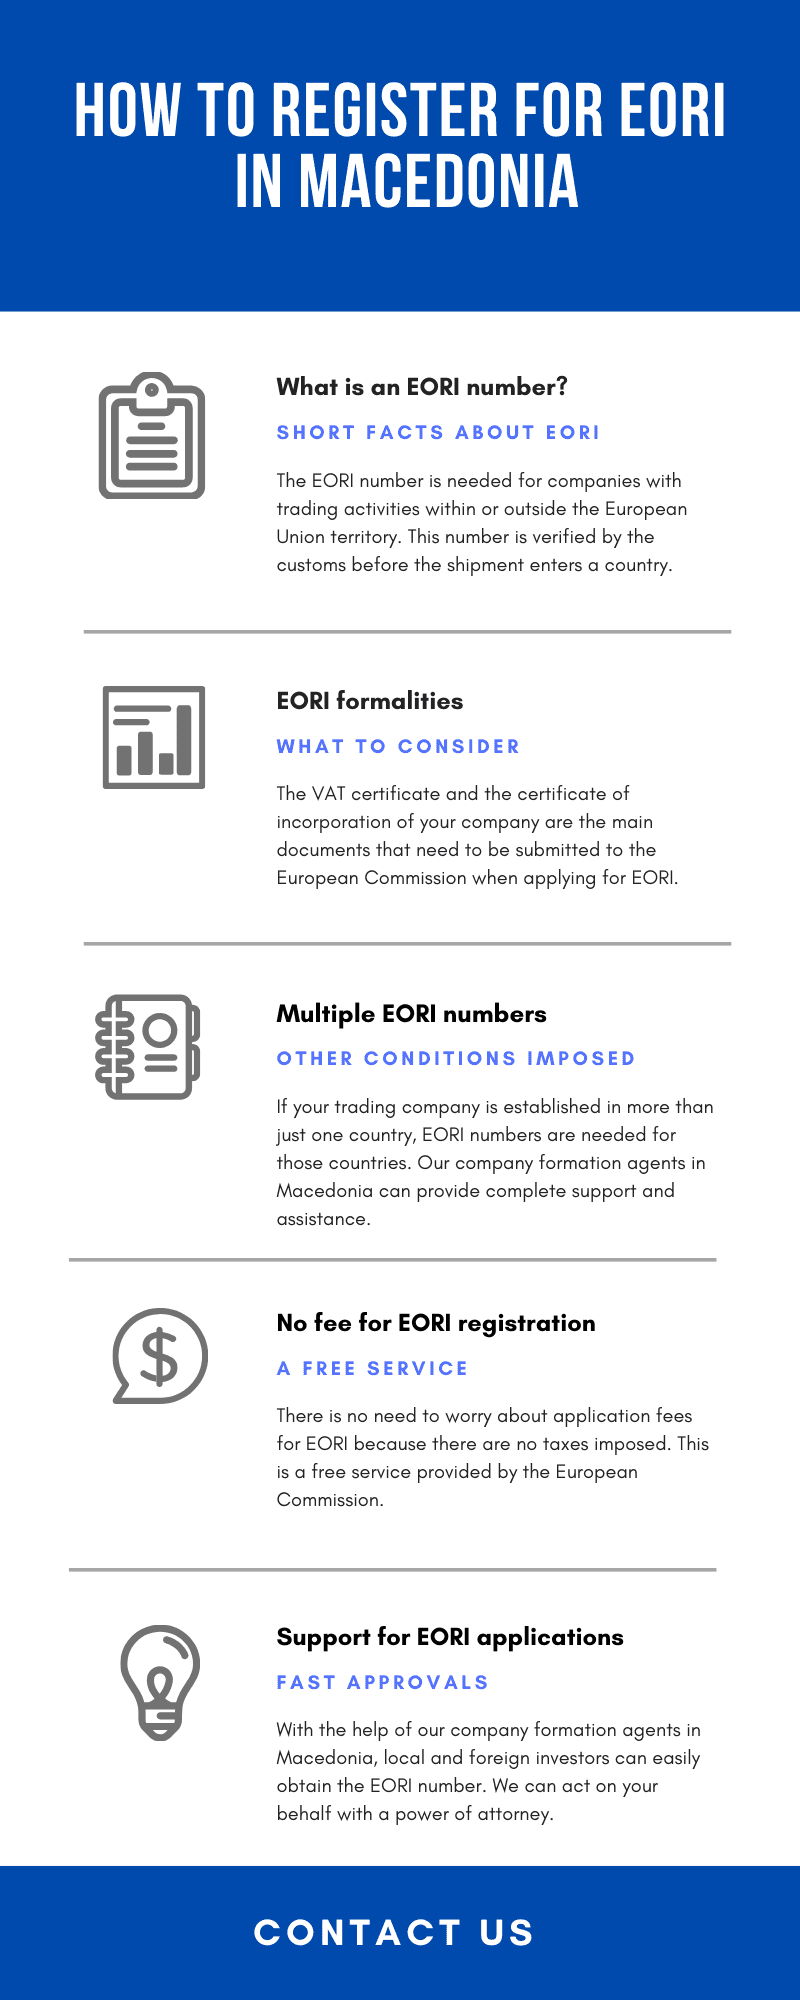 how to register for eori in macedonia1.png